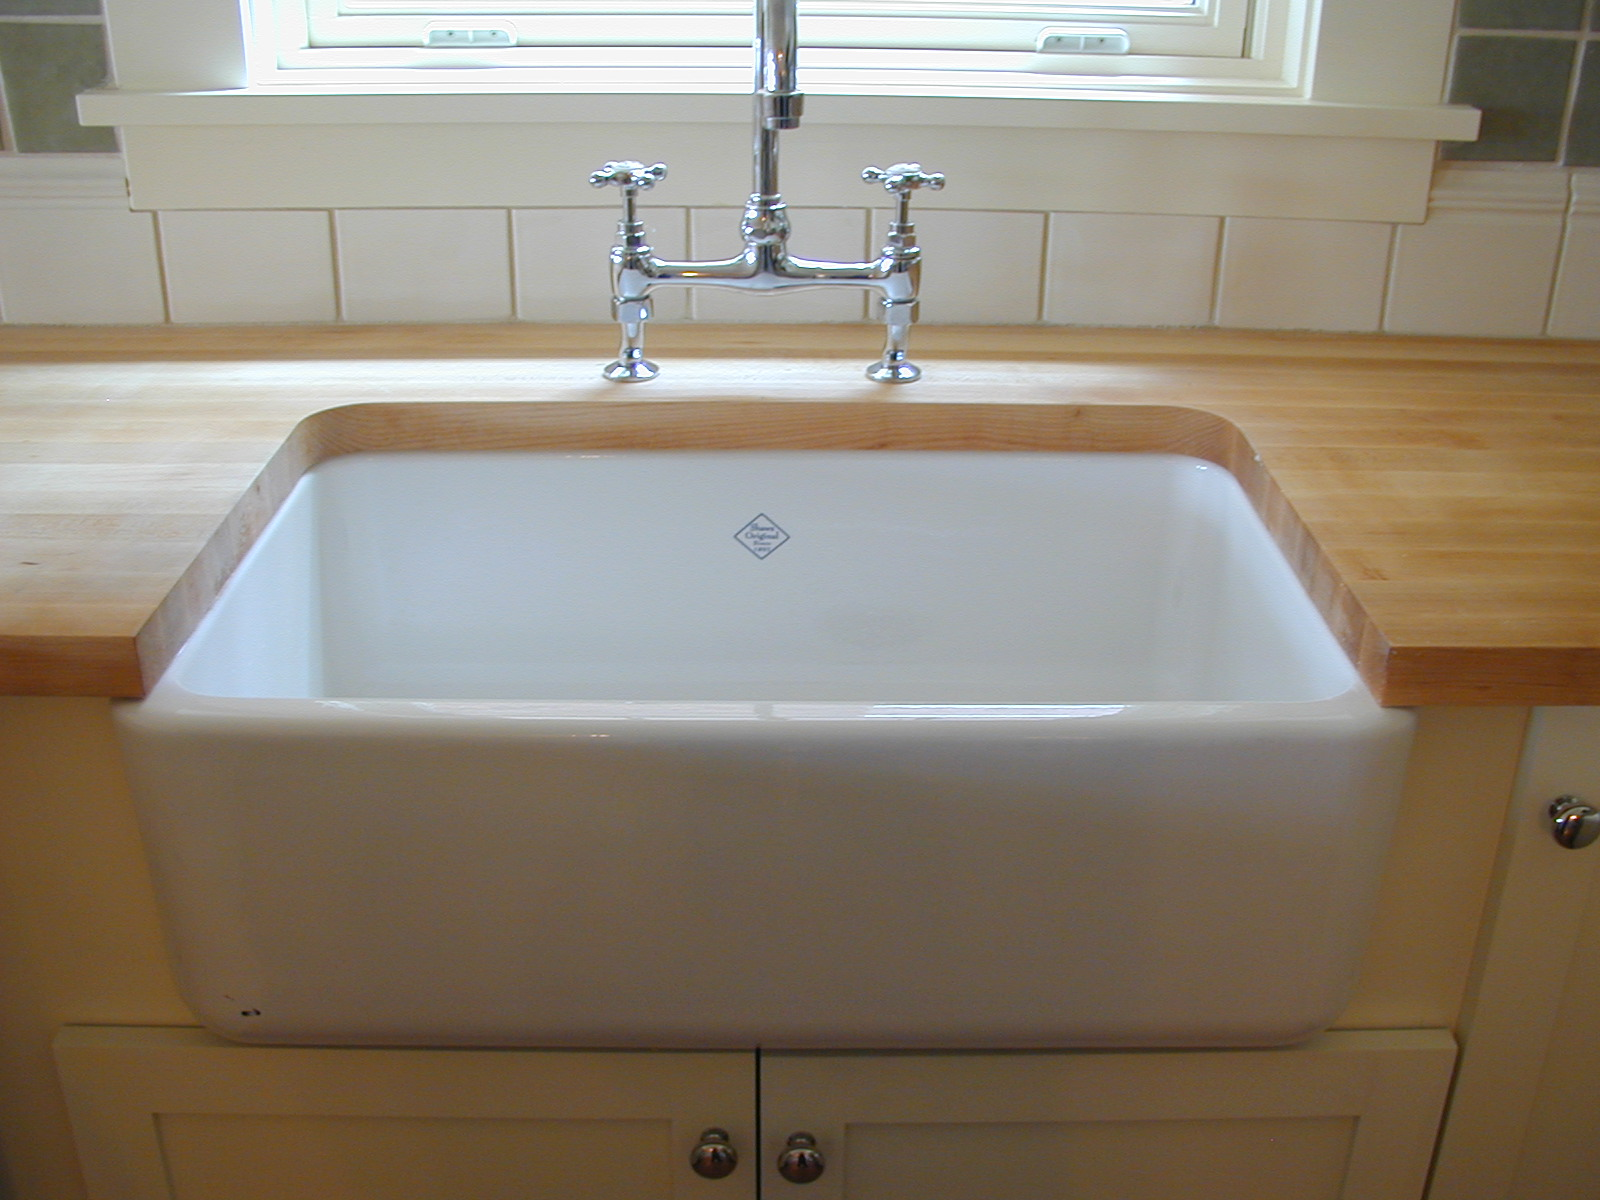 Countertop Sink : country kitchen sink country kitchens kitchen sinks dream kitchens ...